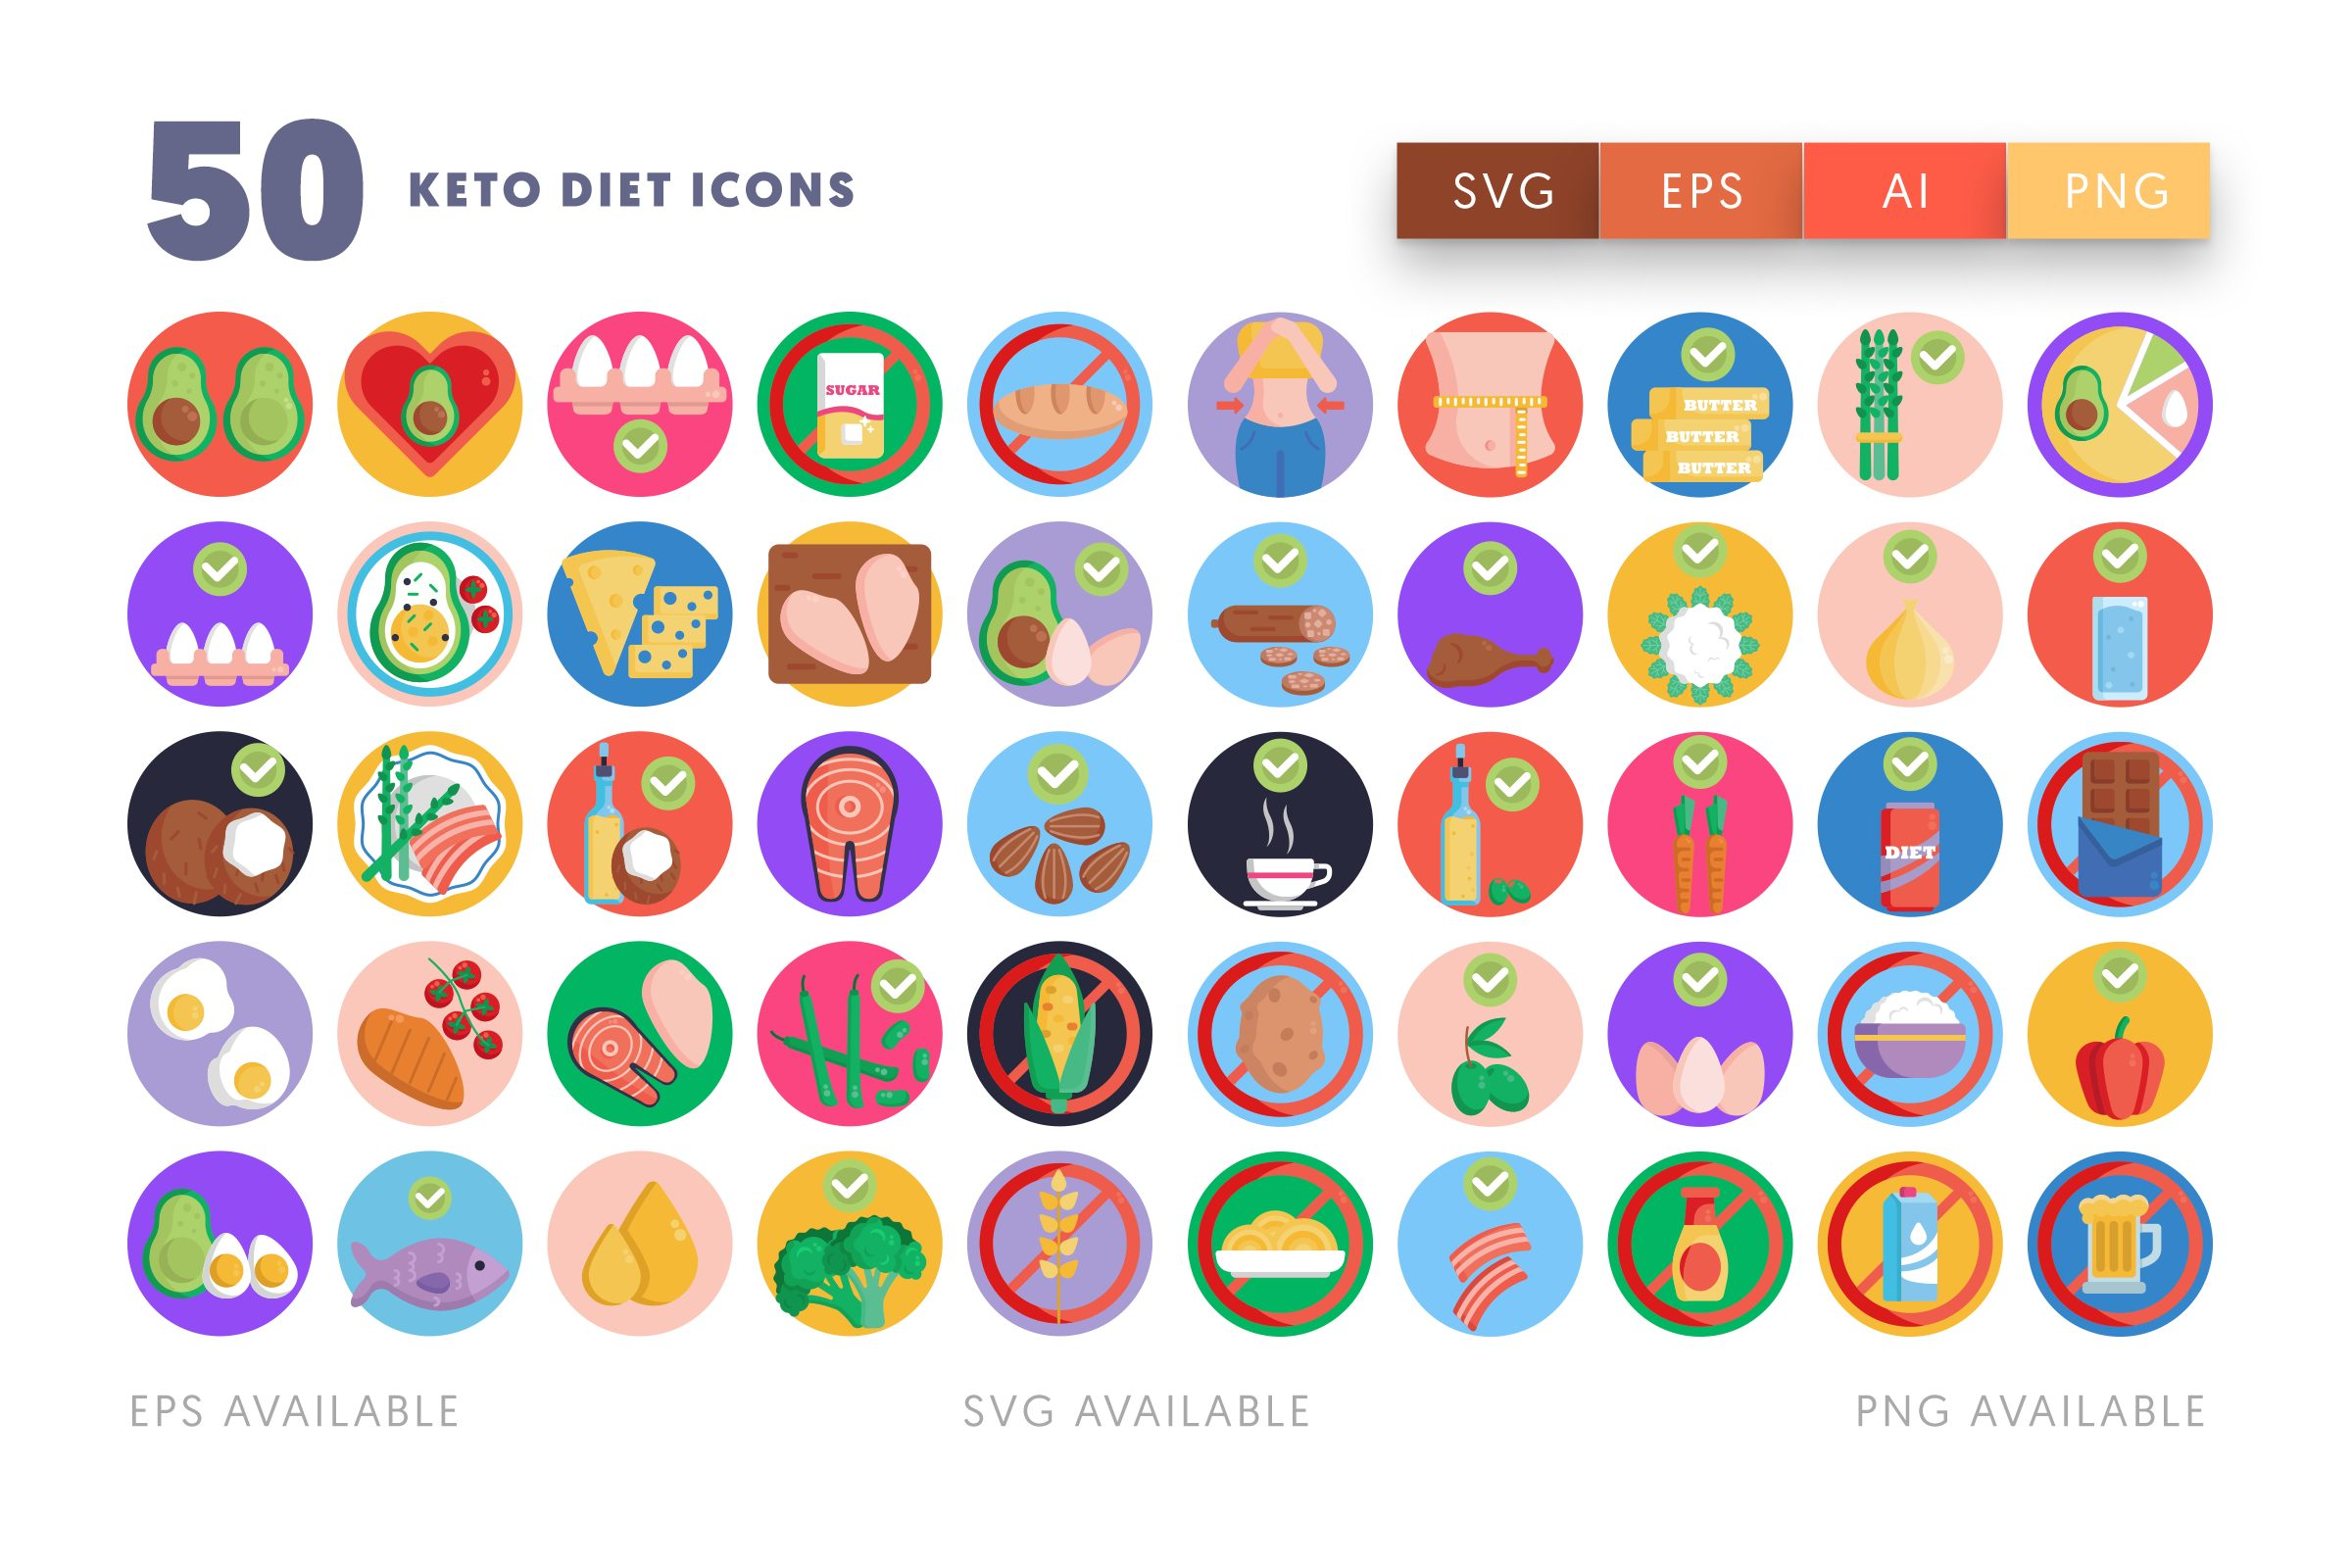 Keto Diet icons png/svg/eps